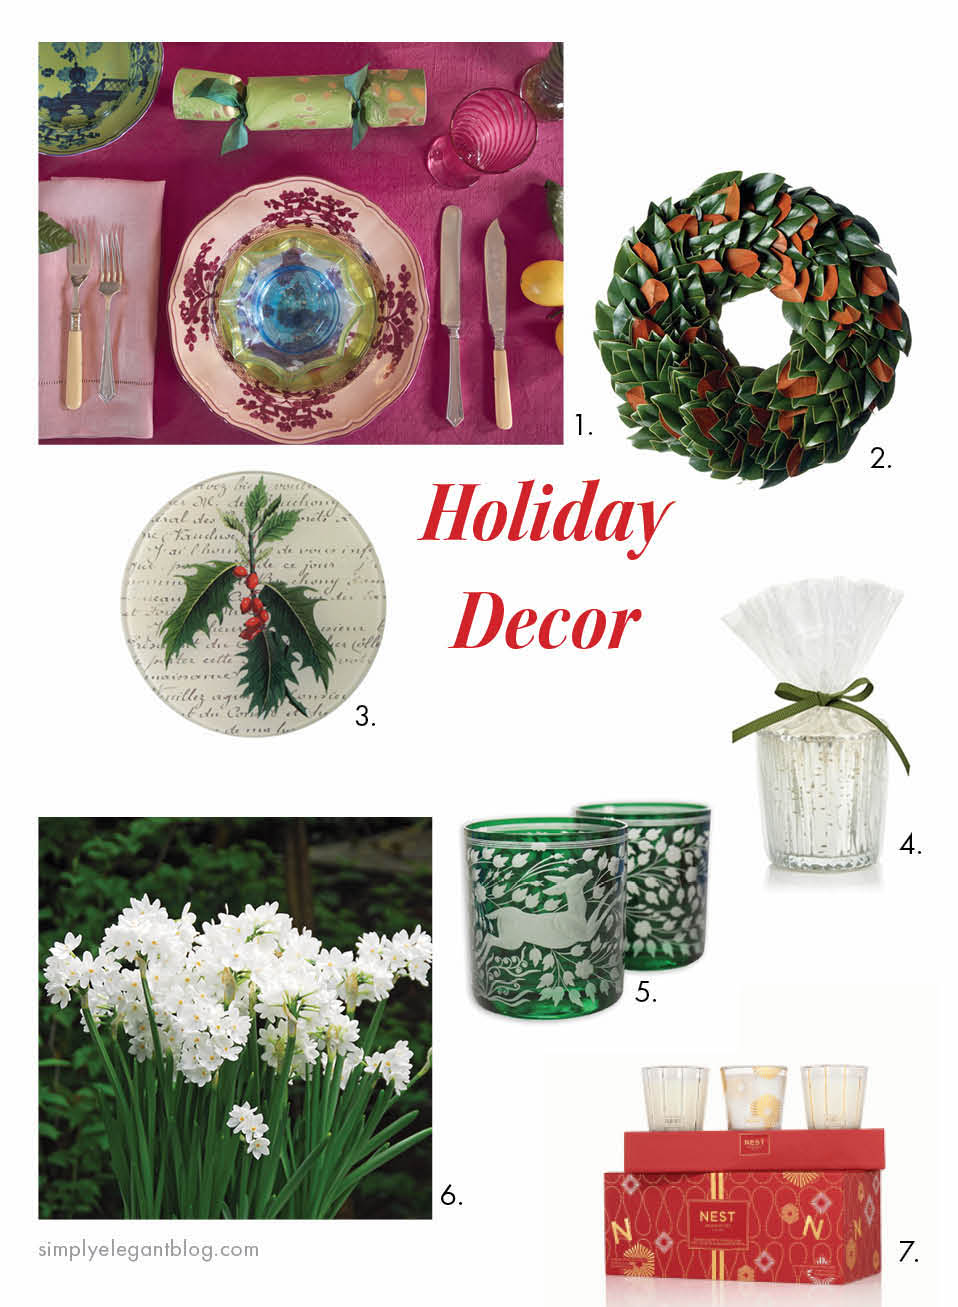 Holiday Decor from Simply Elegant Blog - Magnolia Wreath, NEST Holiday Candle and John Derian Holly Tray.